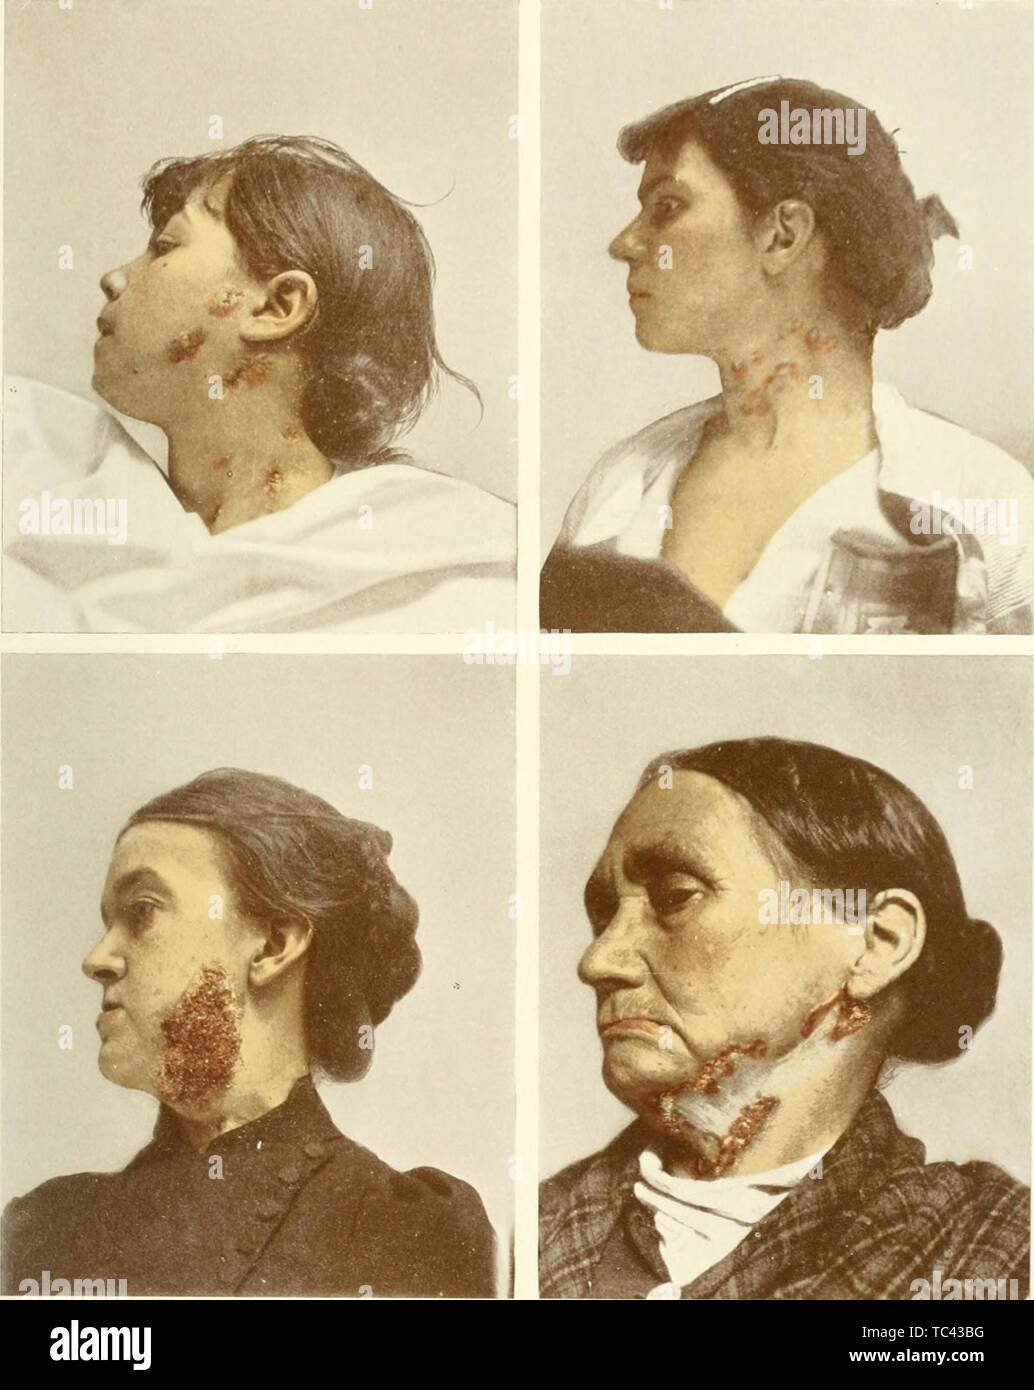 Engravings of four females infected with scrofula, mycobacterial cervical lymphadenitis of the cervical lymph nodes, from the book 'Photographic atlas of the diseases of the skin' by George Henry Fox, 1905. Courtesy Internet Archive. () - Stock Image